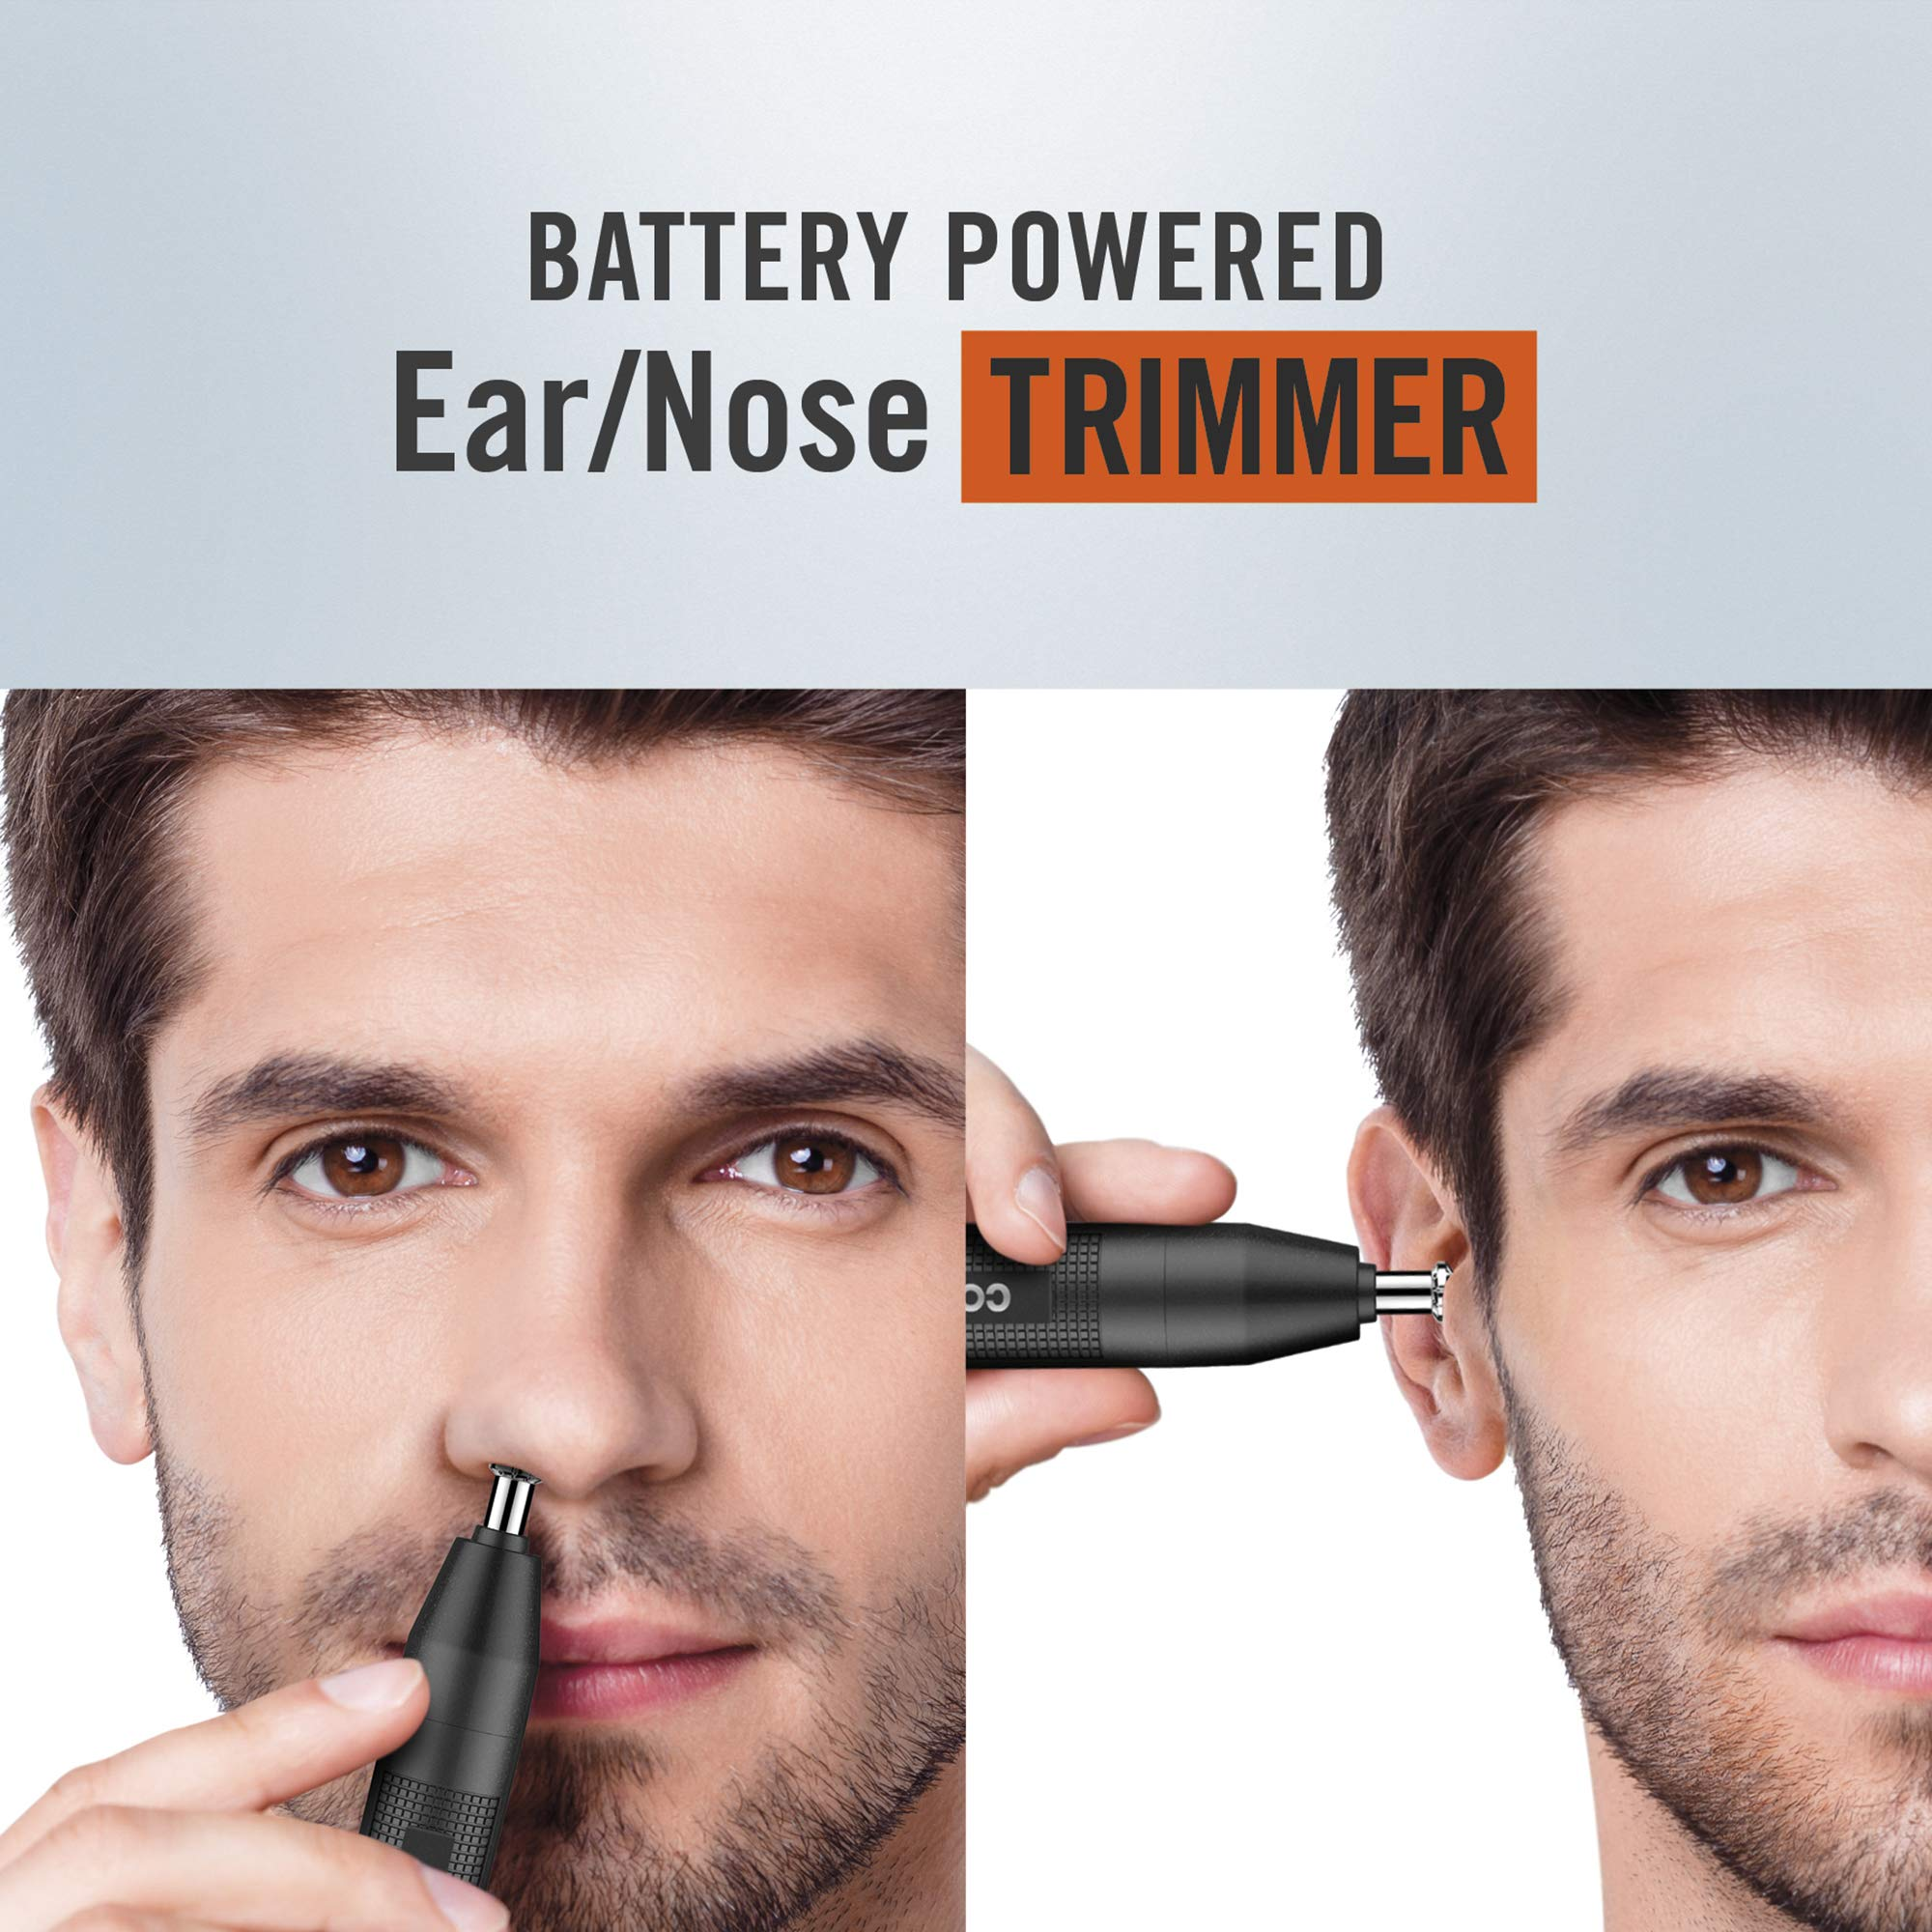 ConairMAN BatteryPowered EarNose Trimmer, Black, 1 Count